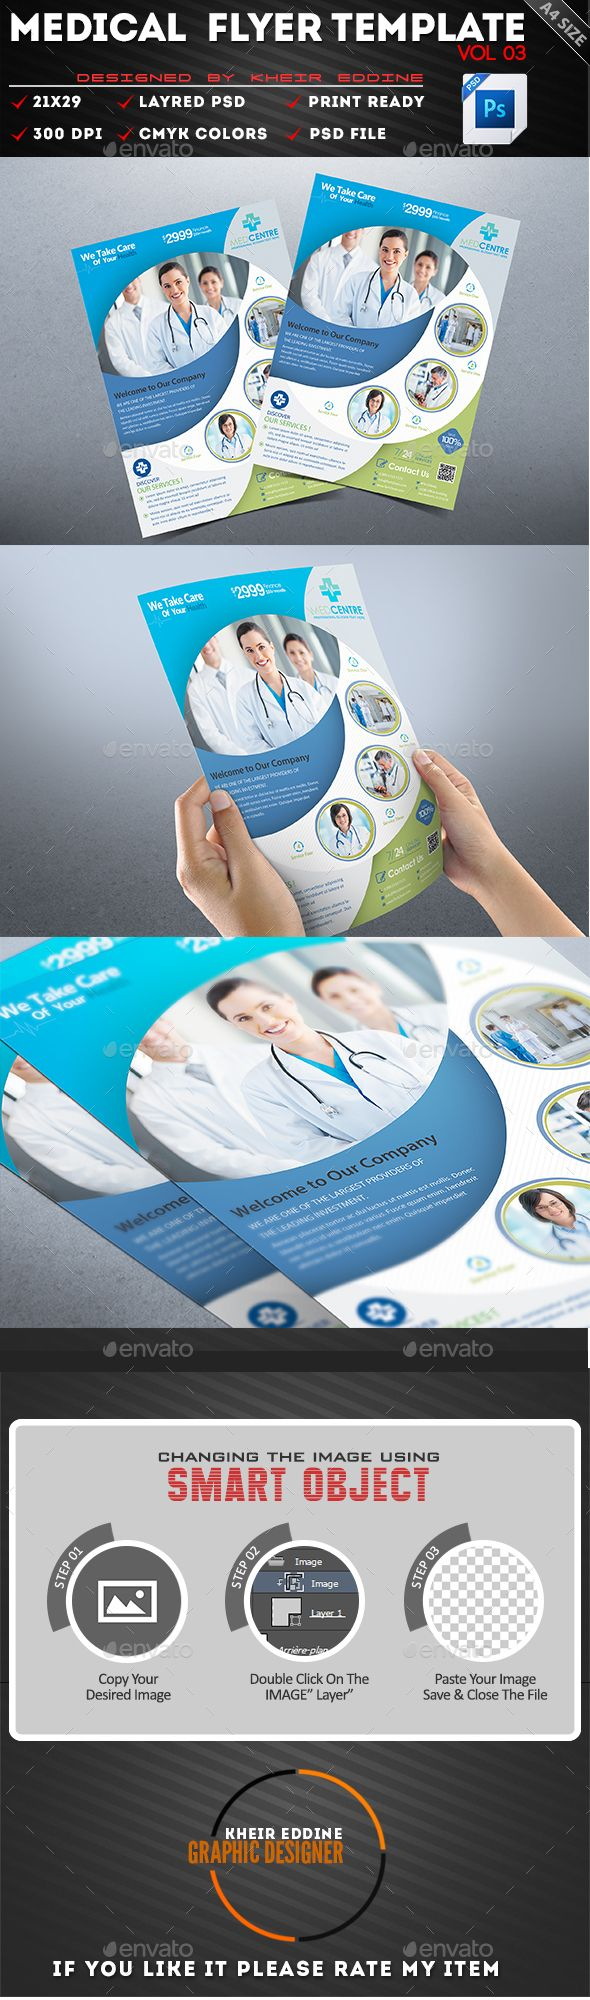 best ideas about flyer templates graphicriver medical flyer template vol 02 business corporate corporateflyer design